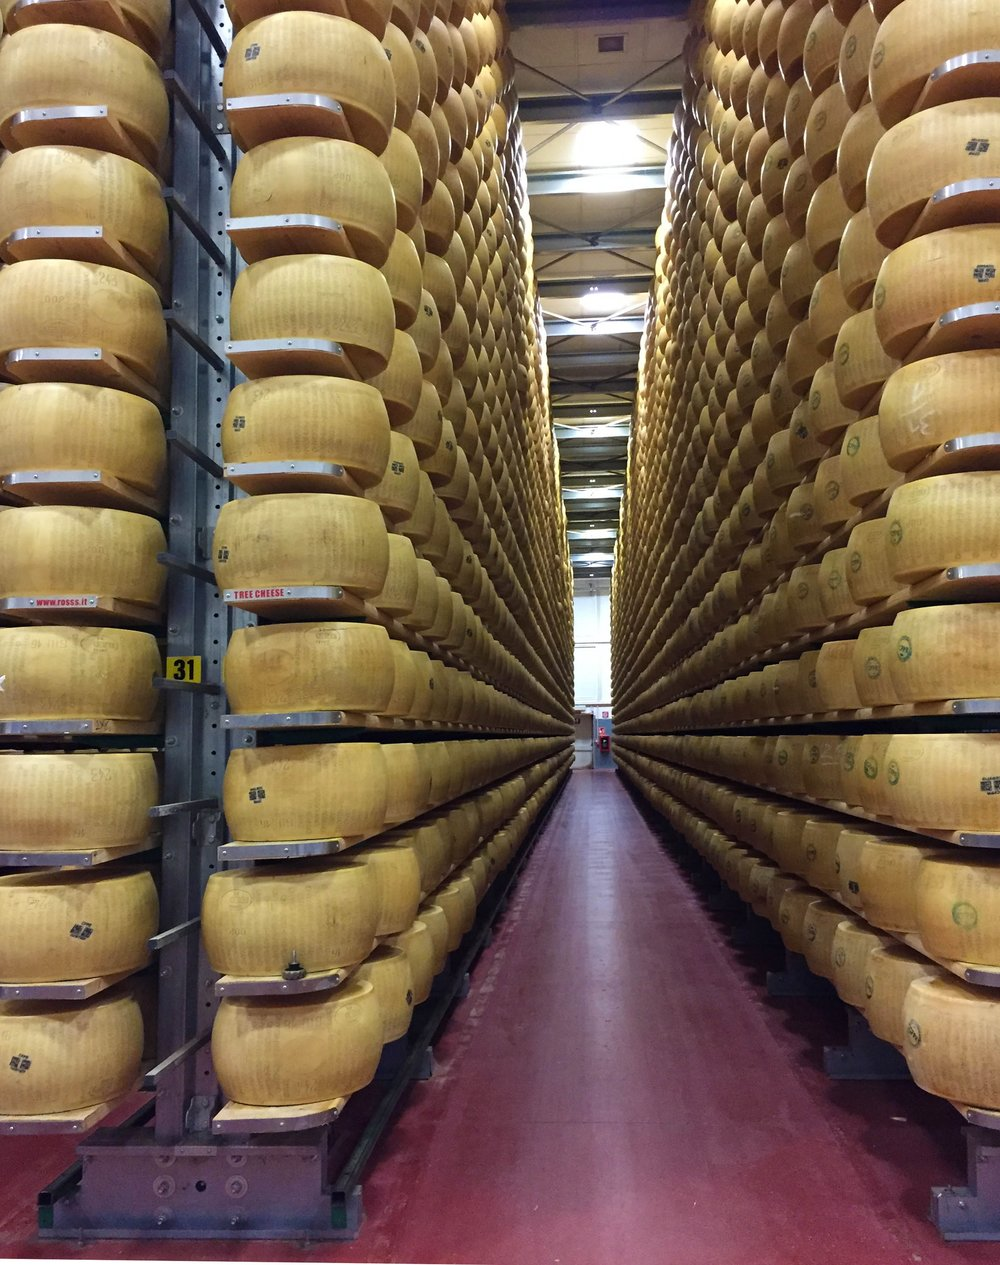 Inside the maturing facility. Photo: Patricia Michelson